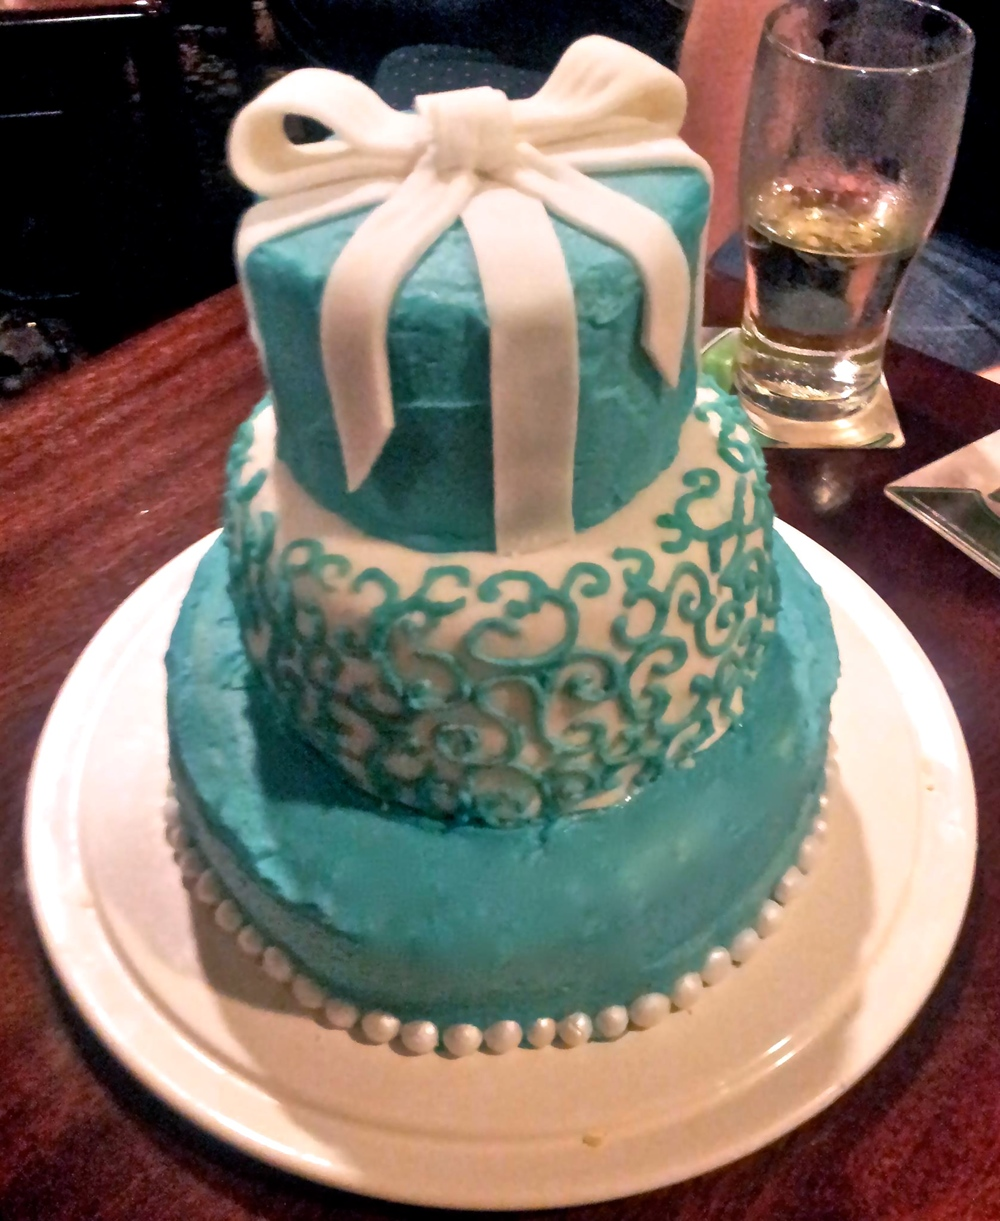 Tiffany's Birthday Cake